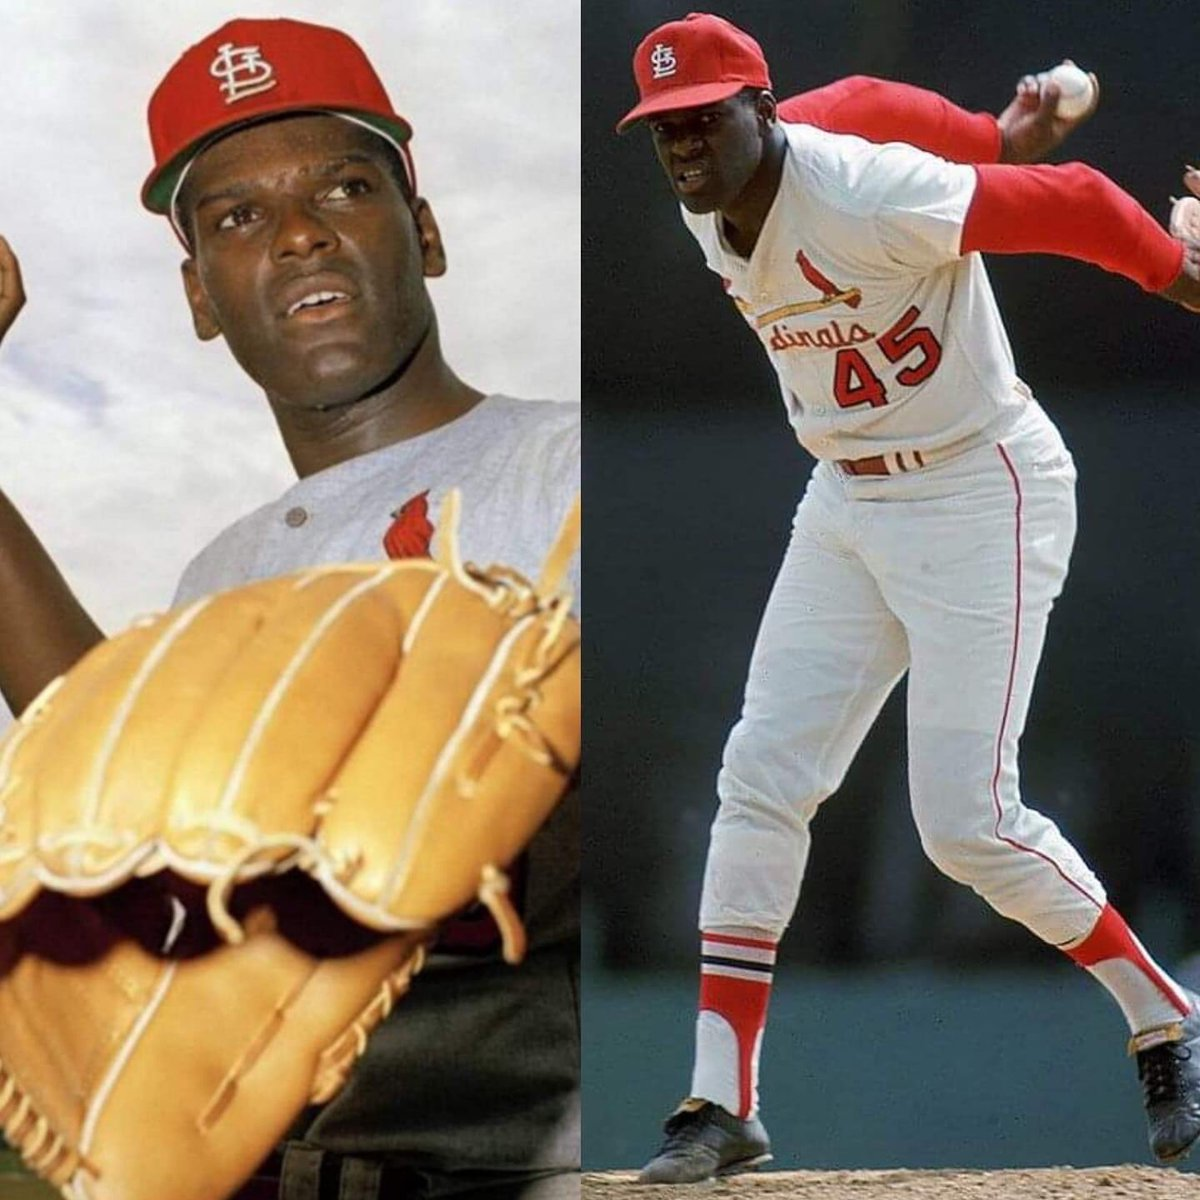 In 1968 Bob Gibson had 34 starts with 28 complete games. He was pinch hit for only 6 times. He was never removed off the mound . Ended with a 1.12 ERA https://t.co/hBm3z9n3Oz